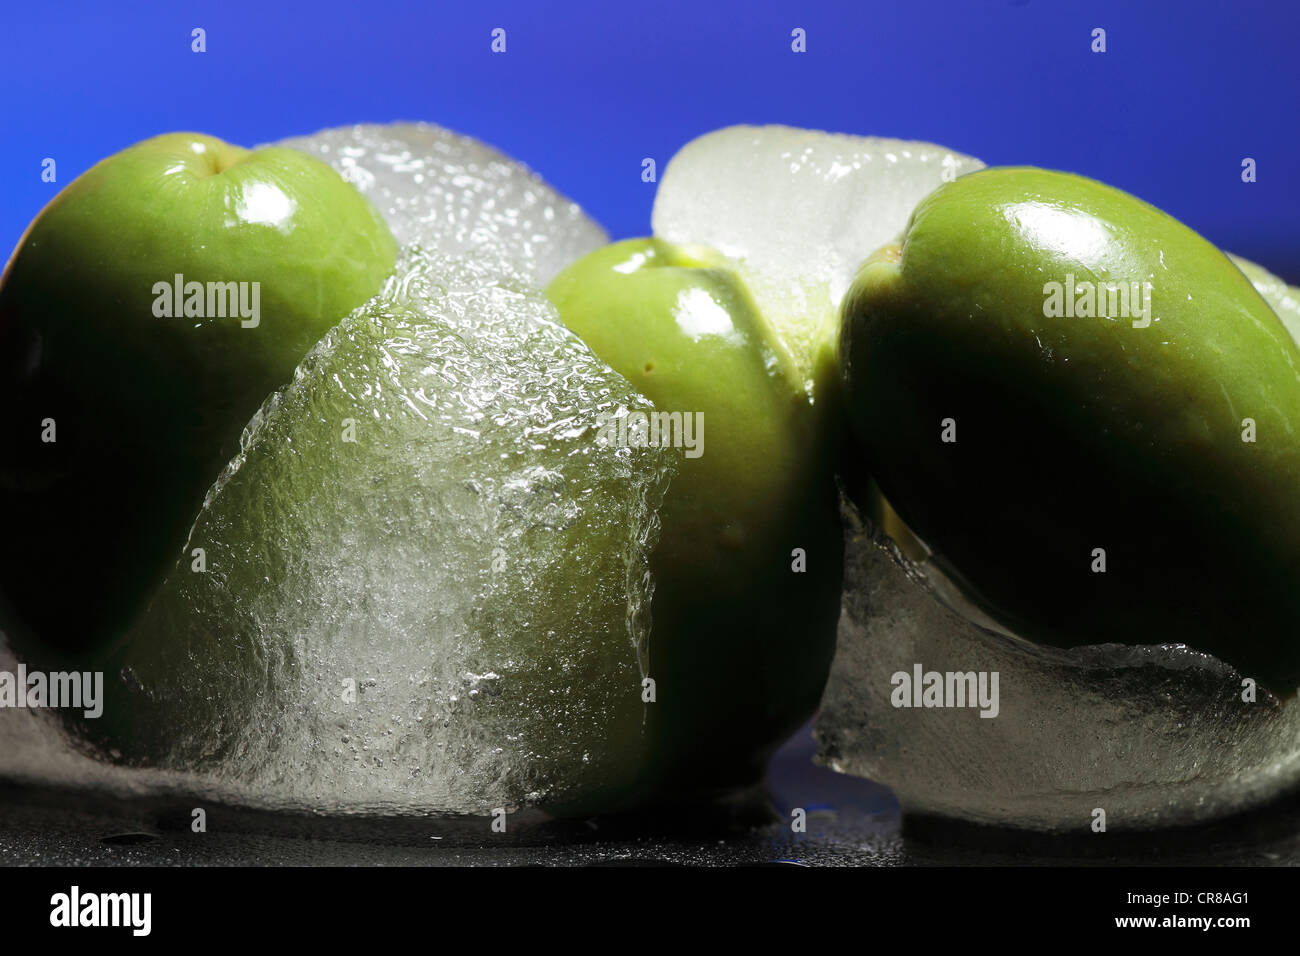 Gastronomia saludable - Stock Image